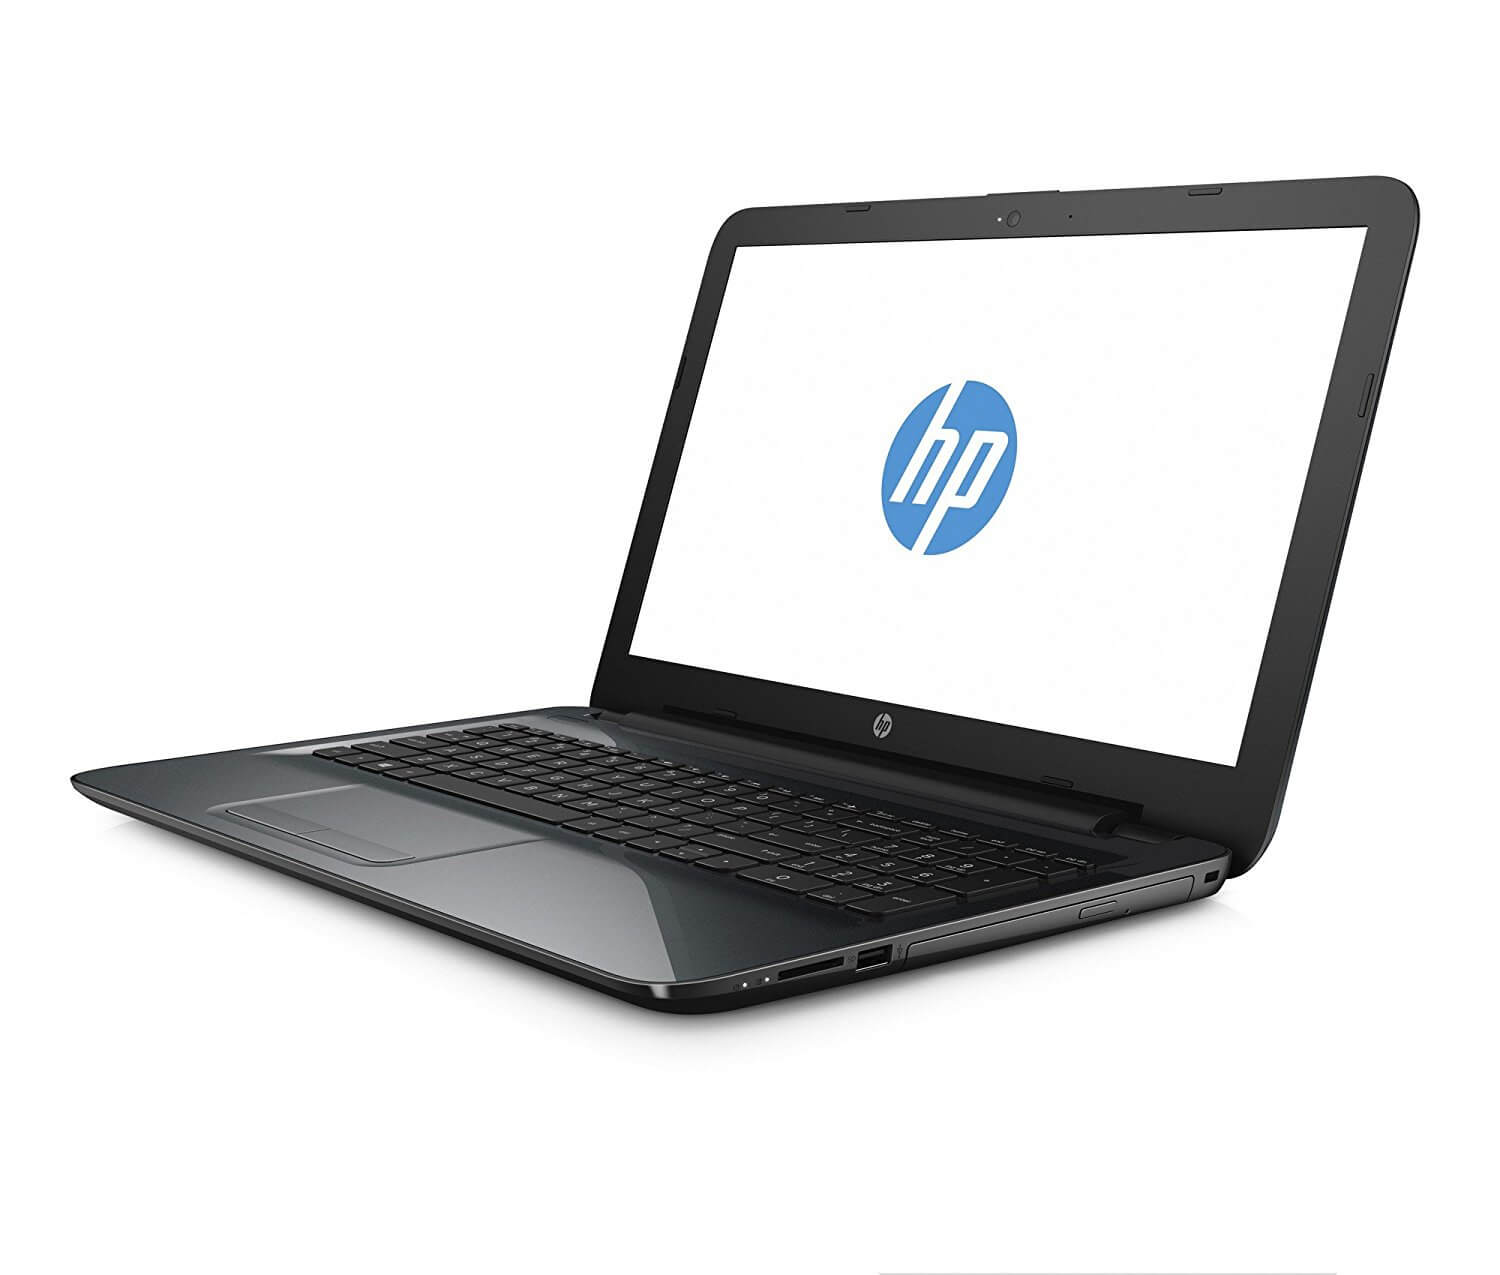 HP ay552TU 15.6-inch Laptop (6th Gen Core i3-6006U/8GB/1TB/FreeDOS 2.0/Graphics), Sparkling Black